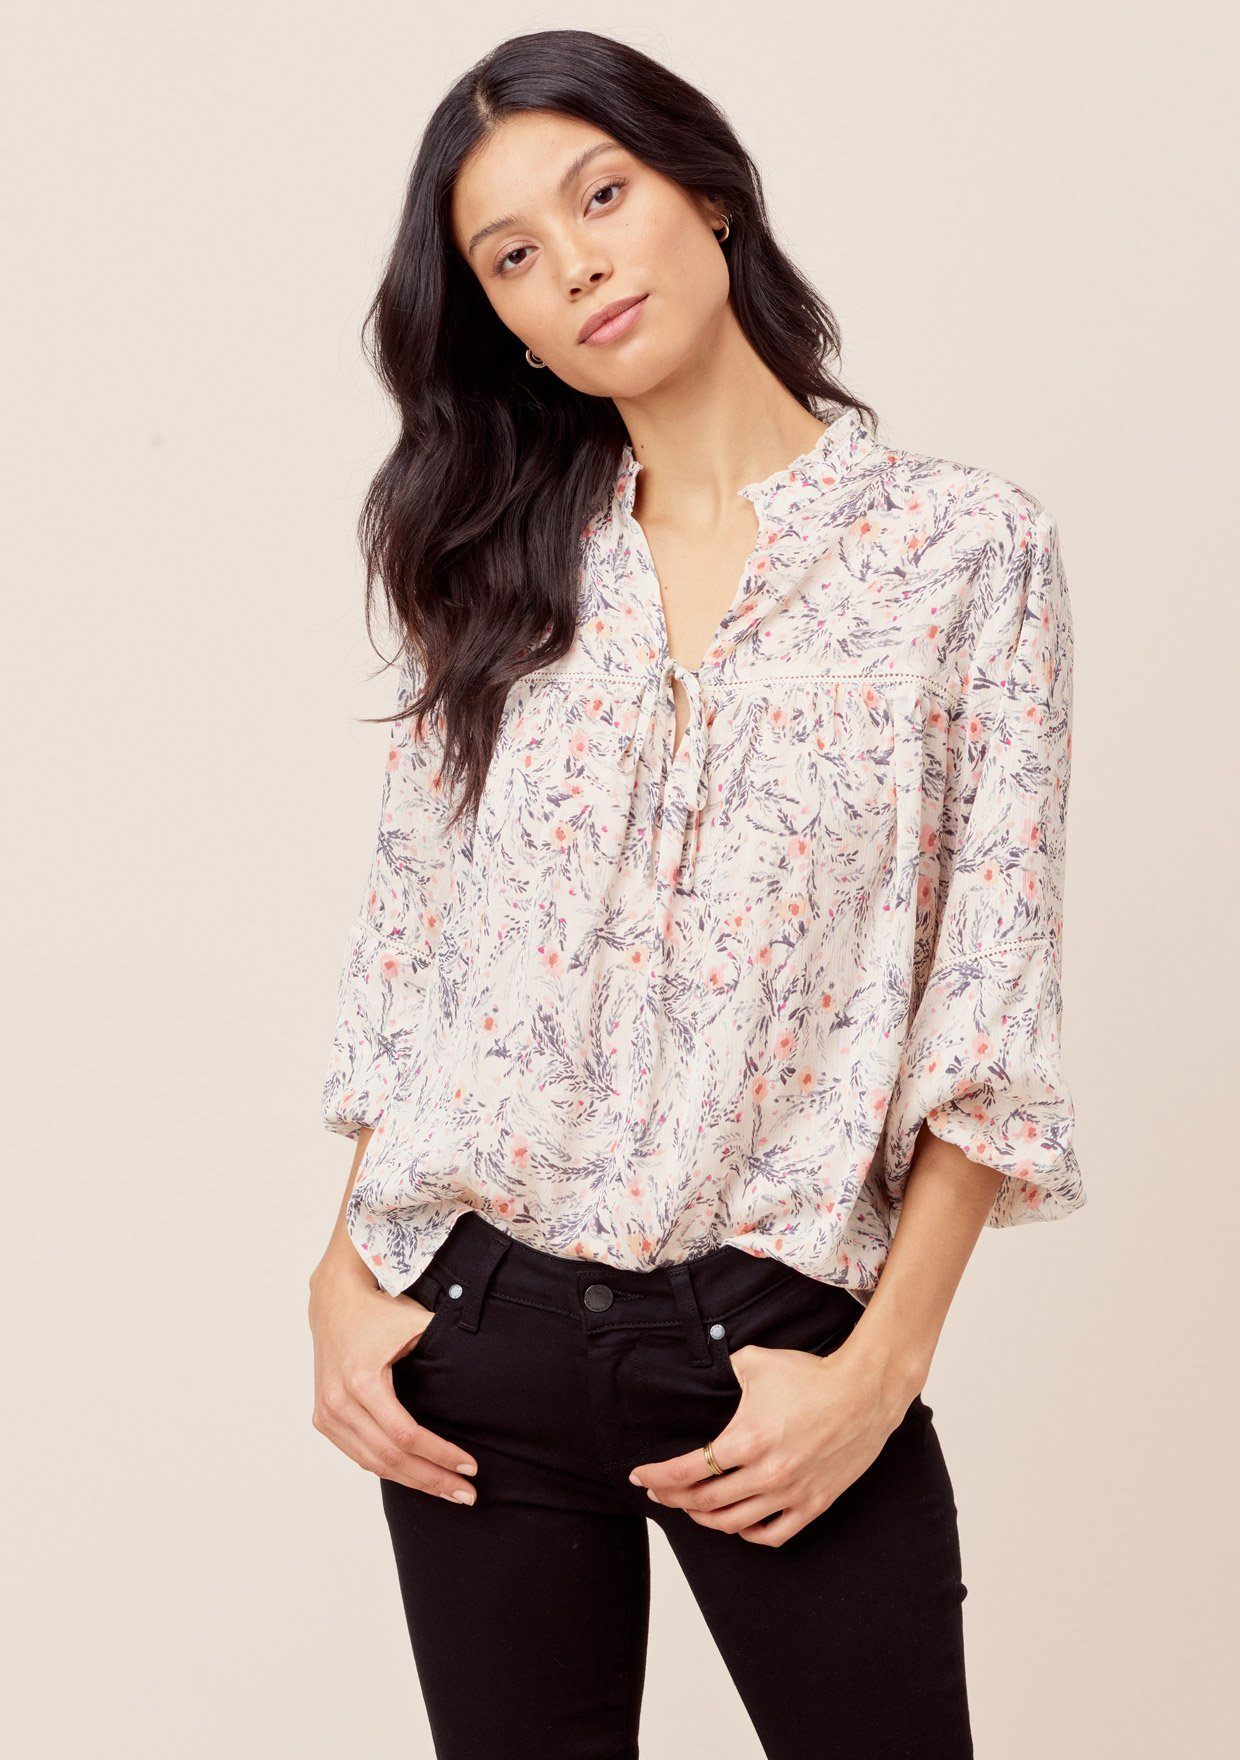 [Color: Natural/Charcoal] Lovestitch natural/charcoal Floral printed top with three quarter length sleeves, crochet lace trim and tie neck detail.